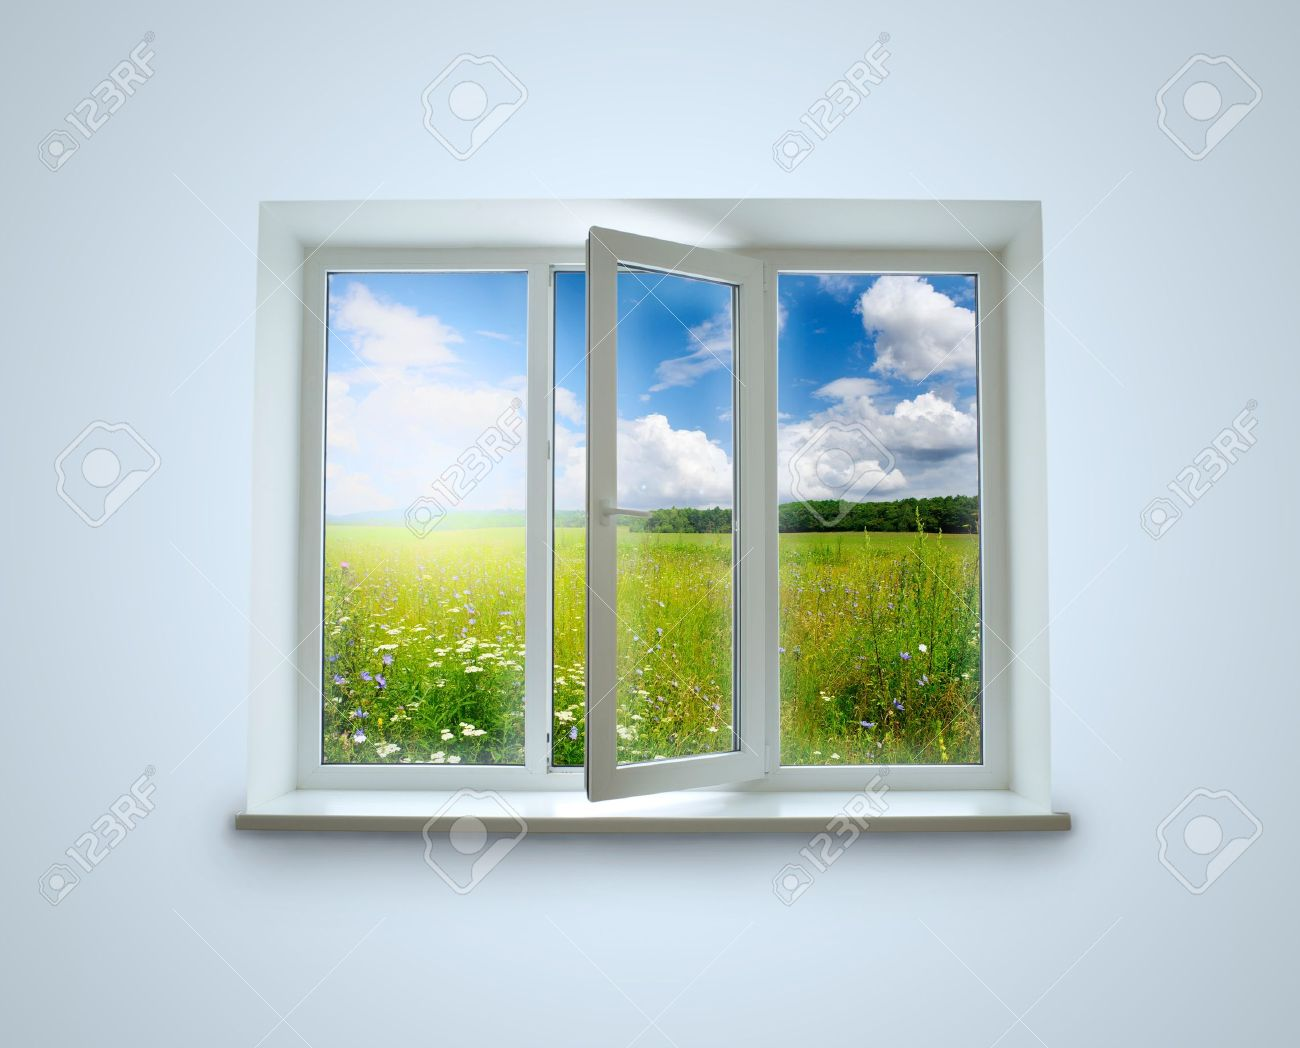 New closed plastic glass window frame isolated on the white background Stock Photo - 18188266